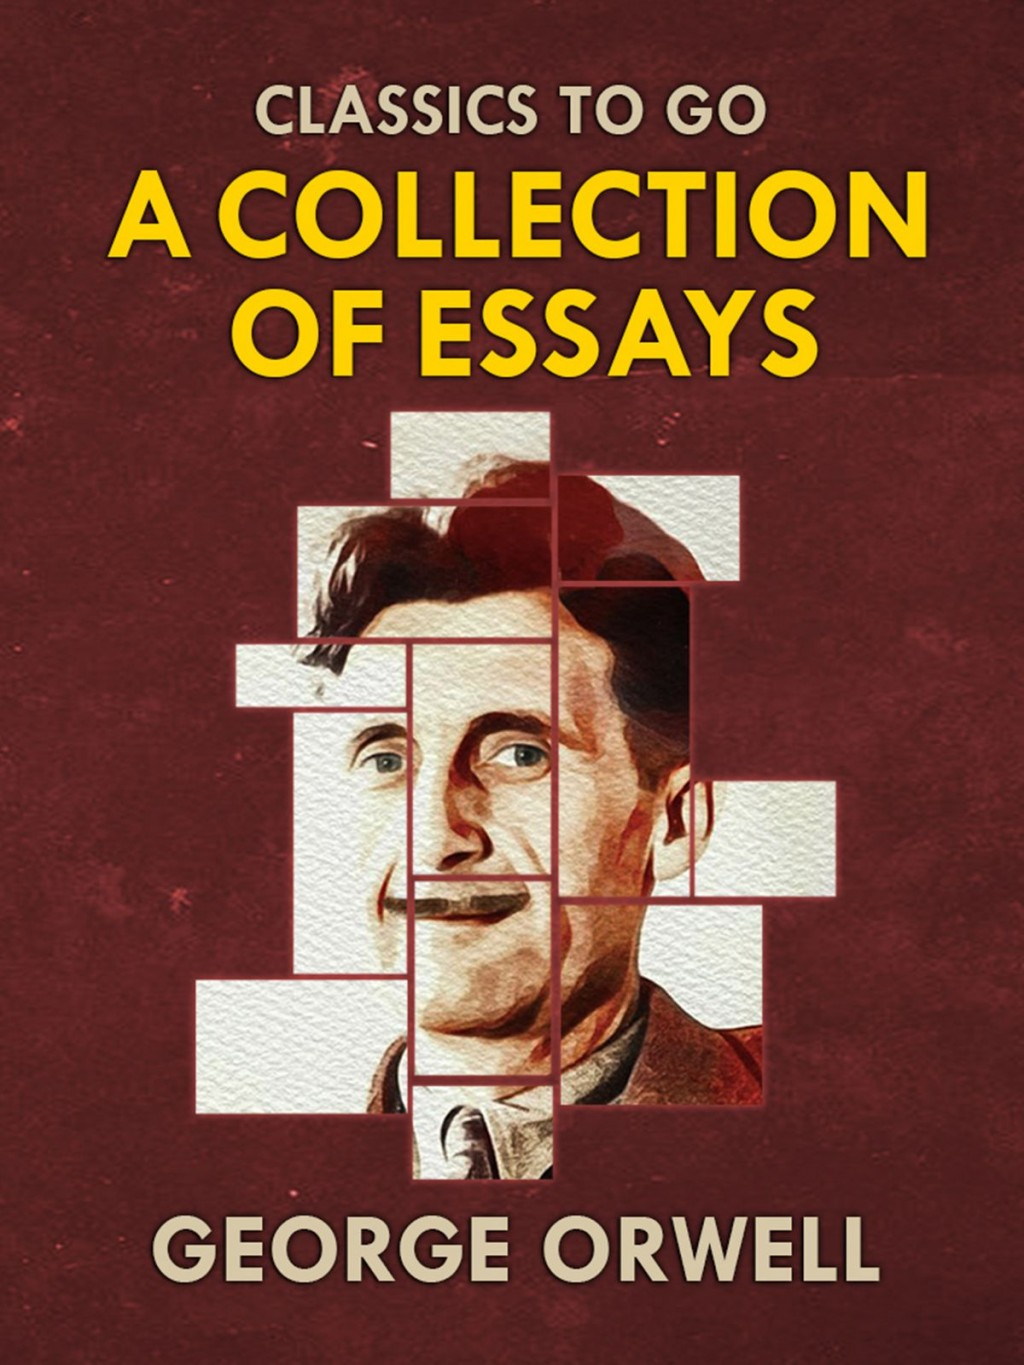 024 Collections Of George Orwell Essays Essay Frightening 1984 Summary Collected Pdf On Writing Large